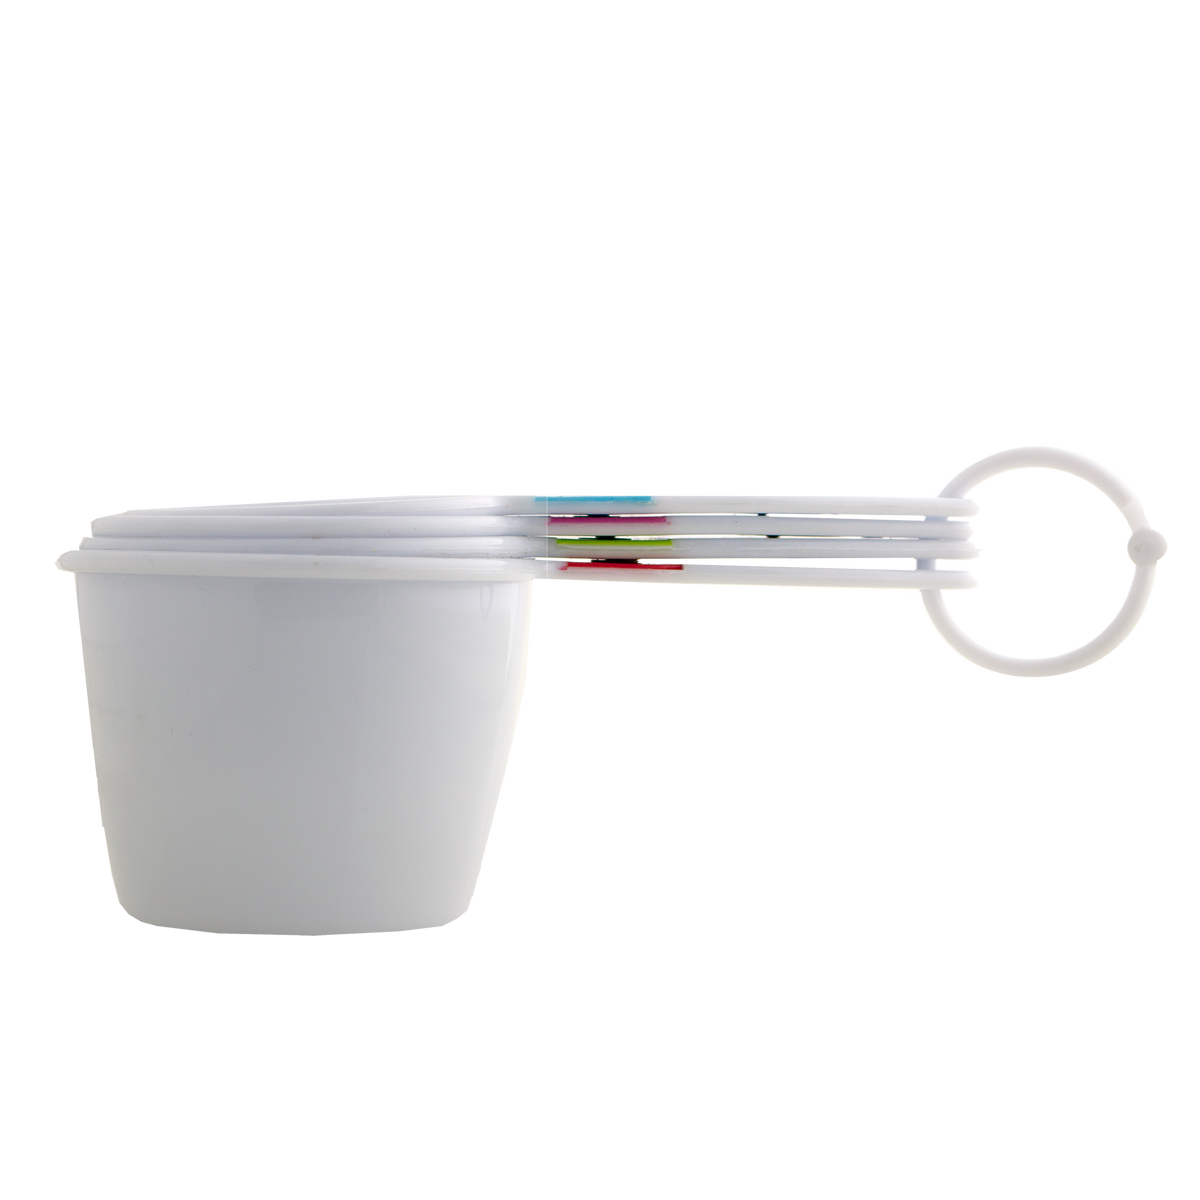 Kates Kitchen 4 piece measuring cup set, clearly marked with cup and ml measures. Dishwasher safe for easy cleaning